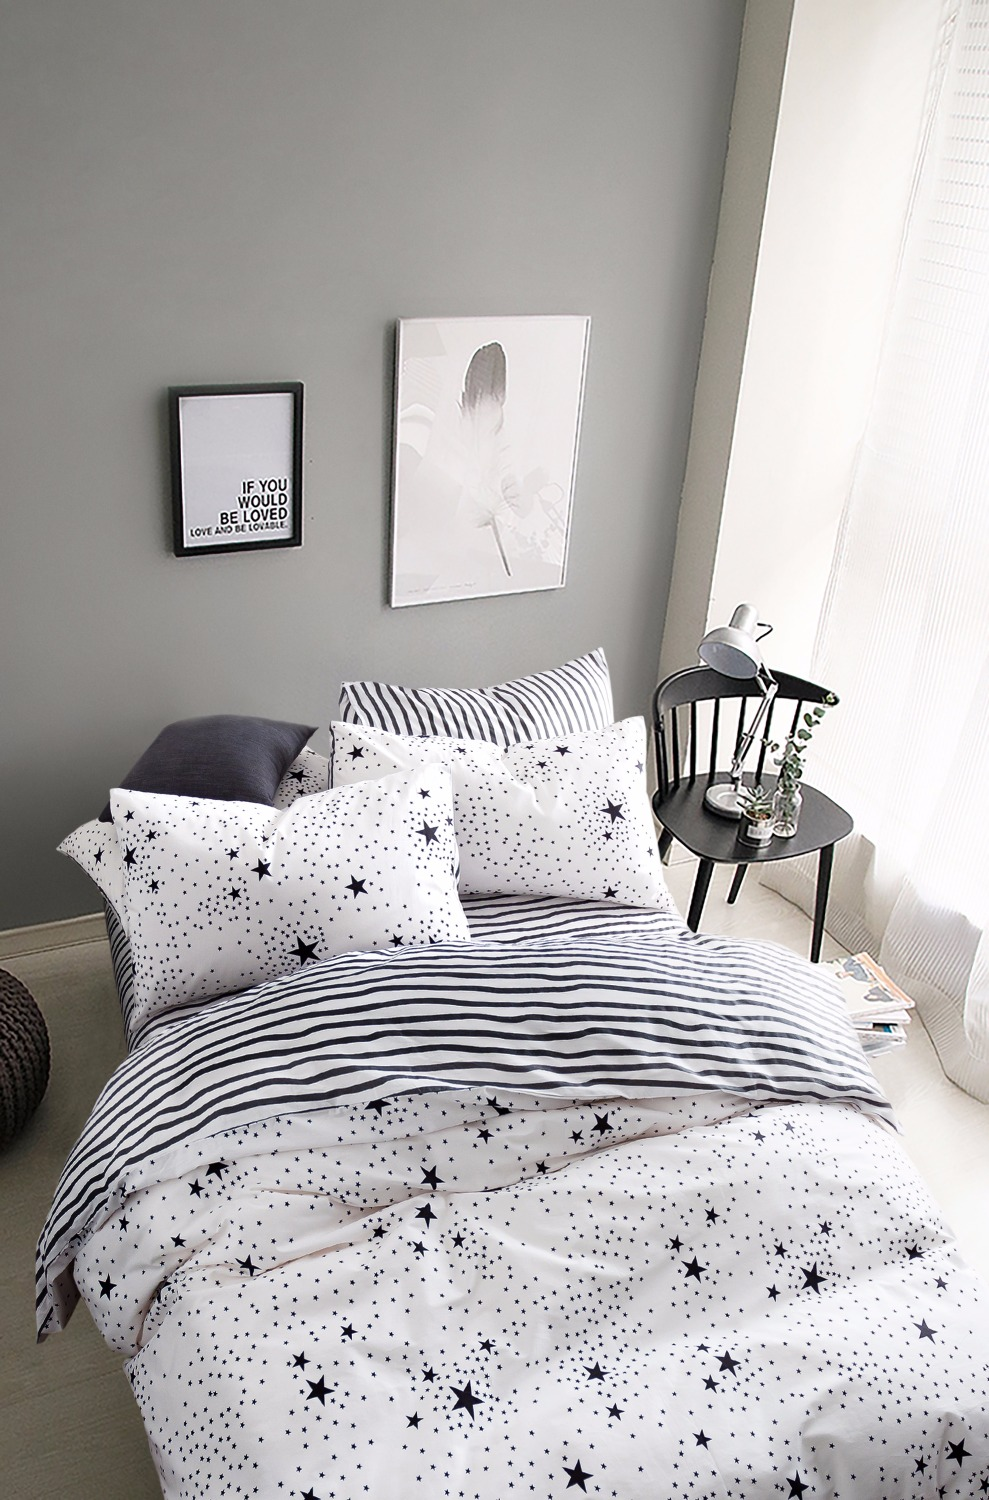 Black and white bed sets for girls - Black White Star Print Kids Boys Girls Bedding Set Twin Queen Size North European 4